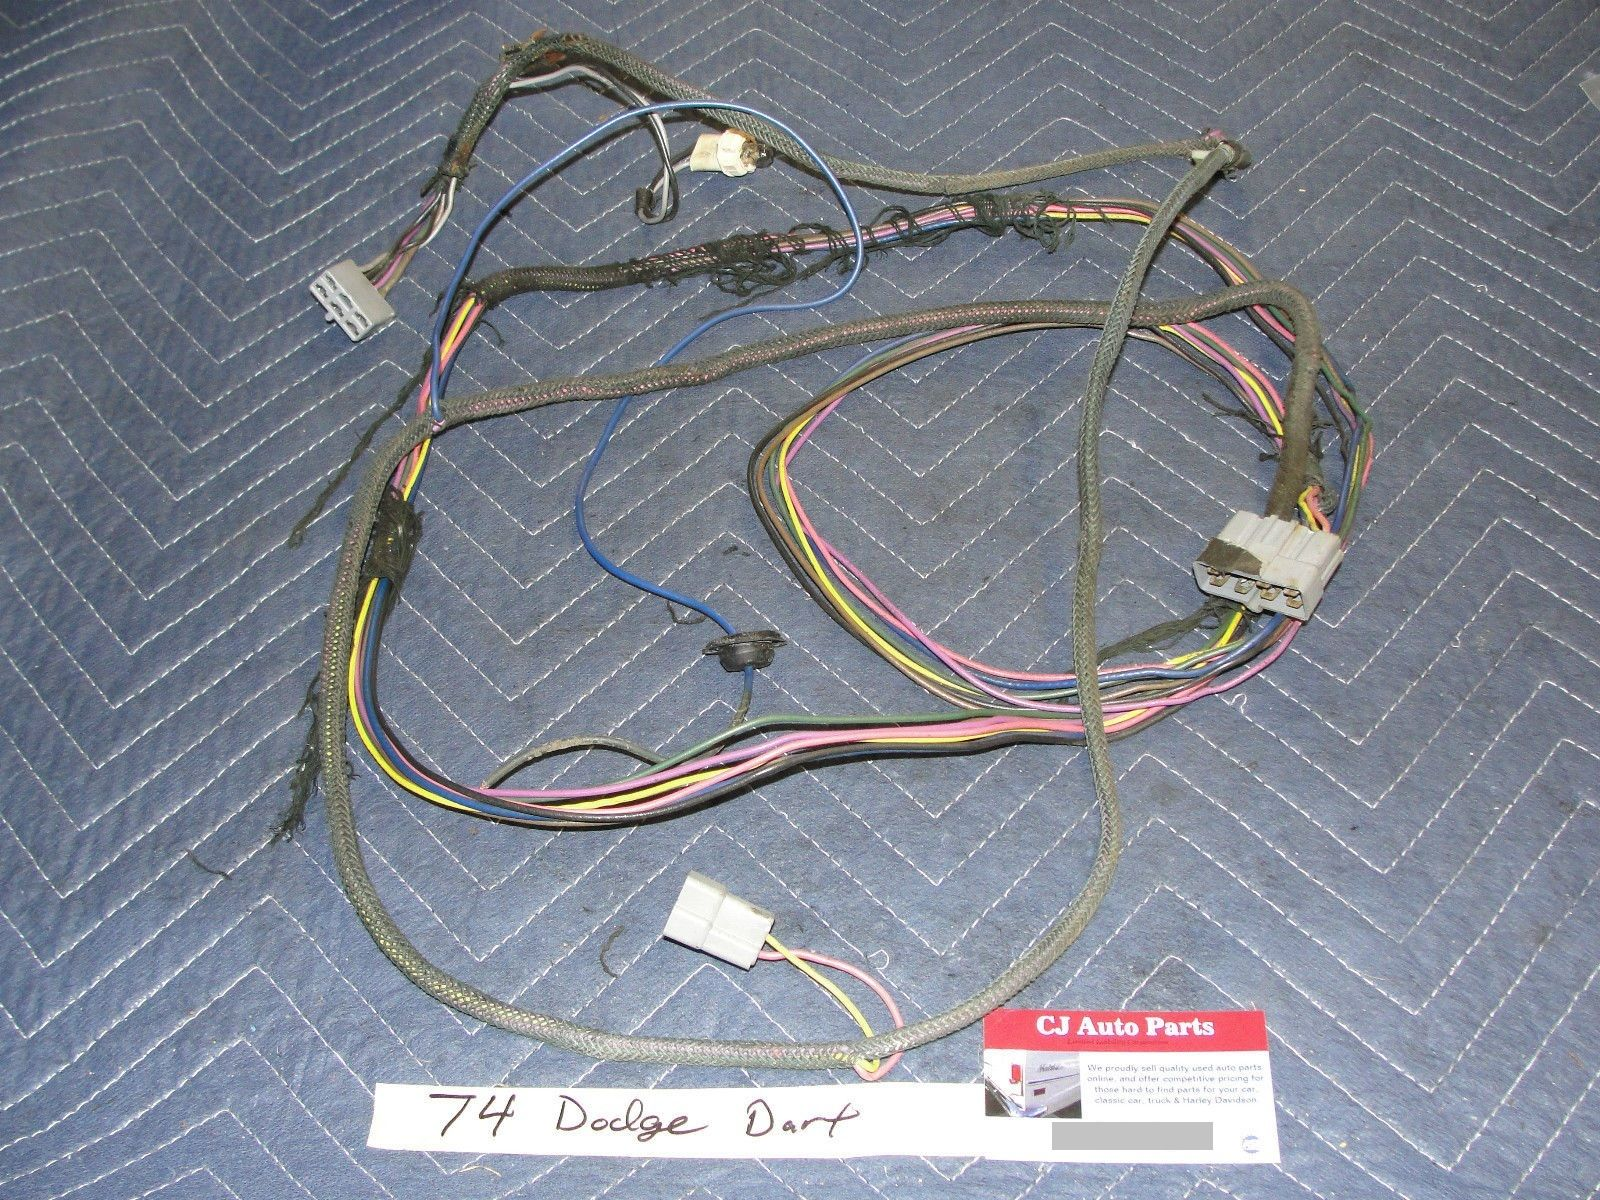 Dodge 74 Dodge Dart Plymouth COMPLETE FRONT TO REAR WIRING WIRE – Dodge Dart Wiring Harness